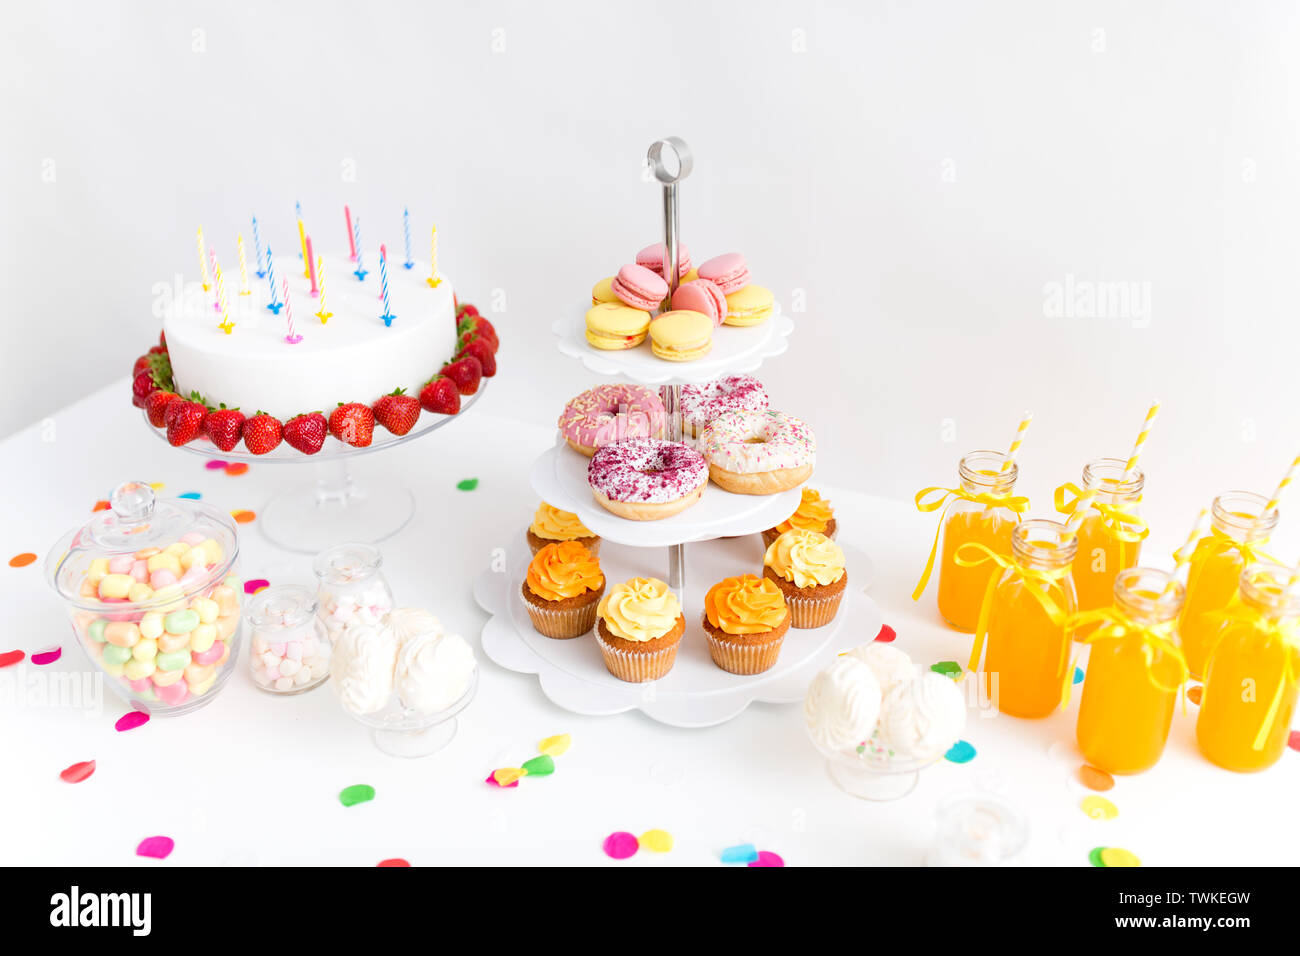 food and drinks on table at birthday party - Stock Image